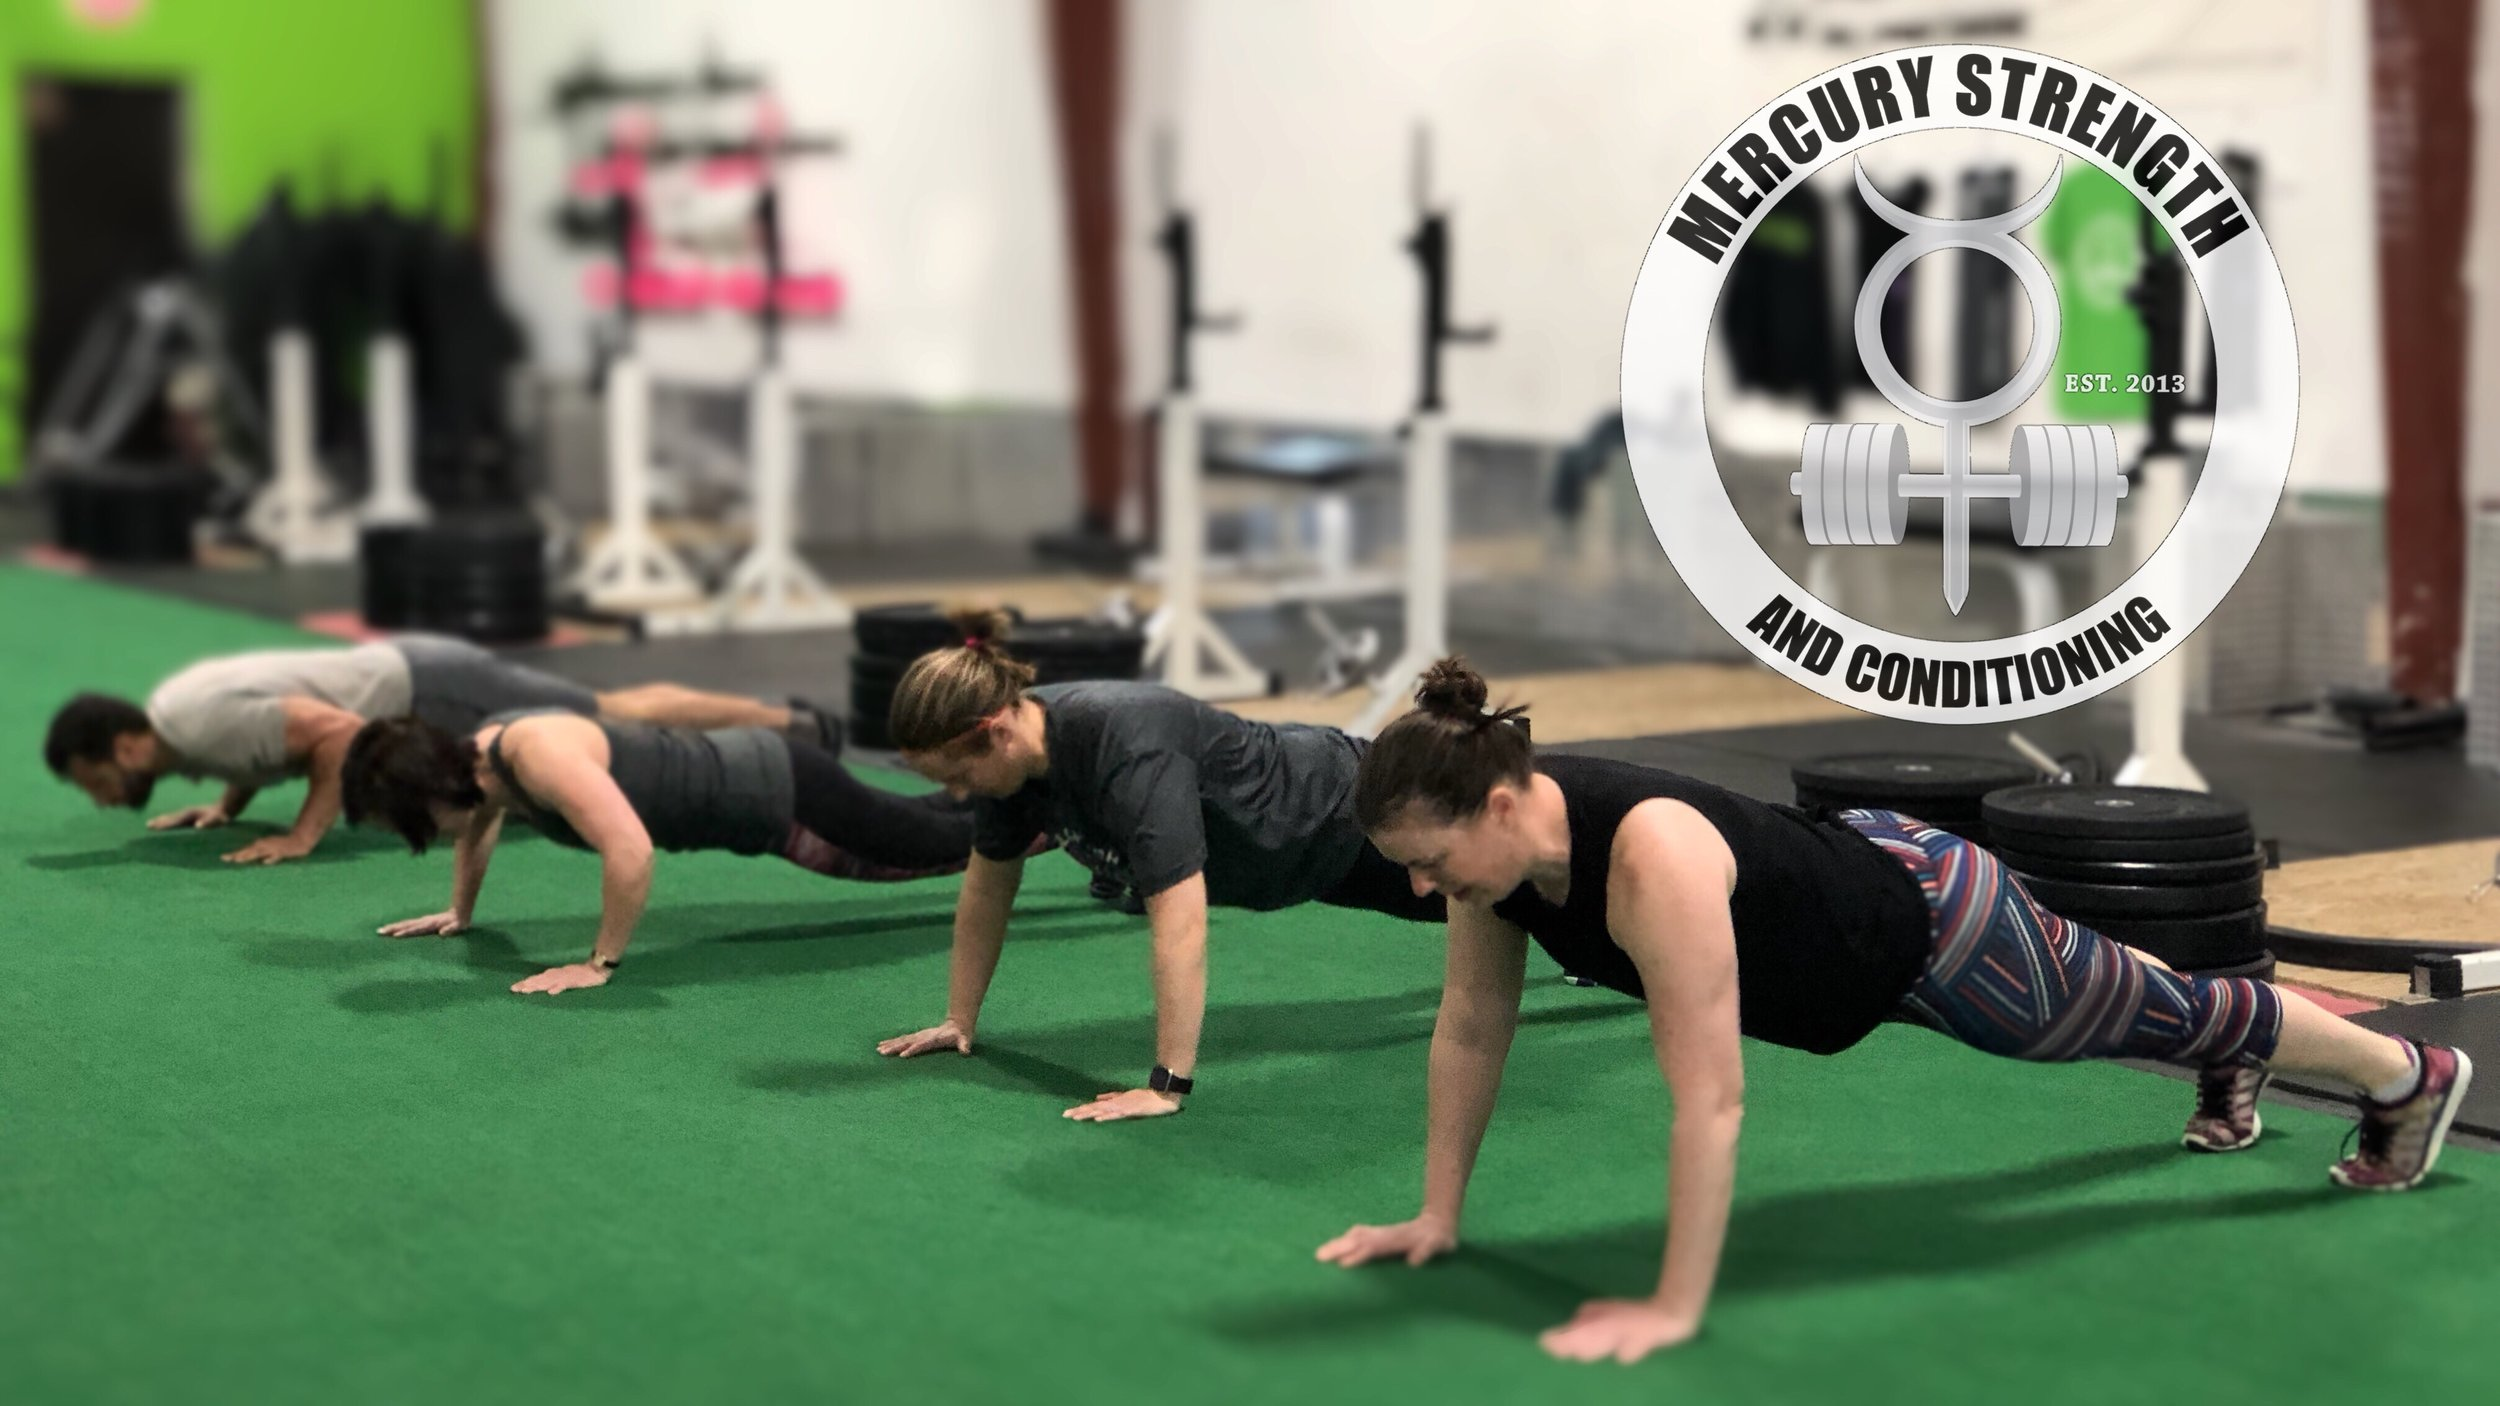 Katherine, Tara, Shawna, and Mike with some push-ups every minute